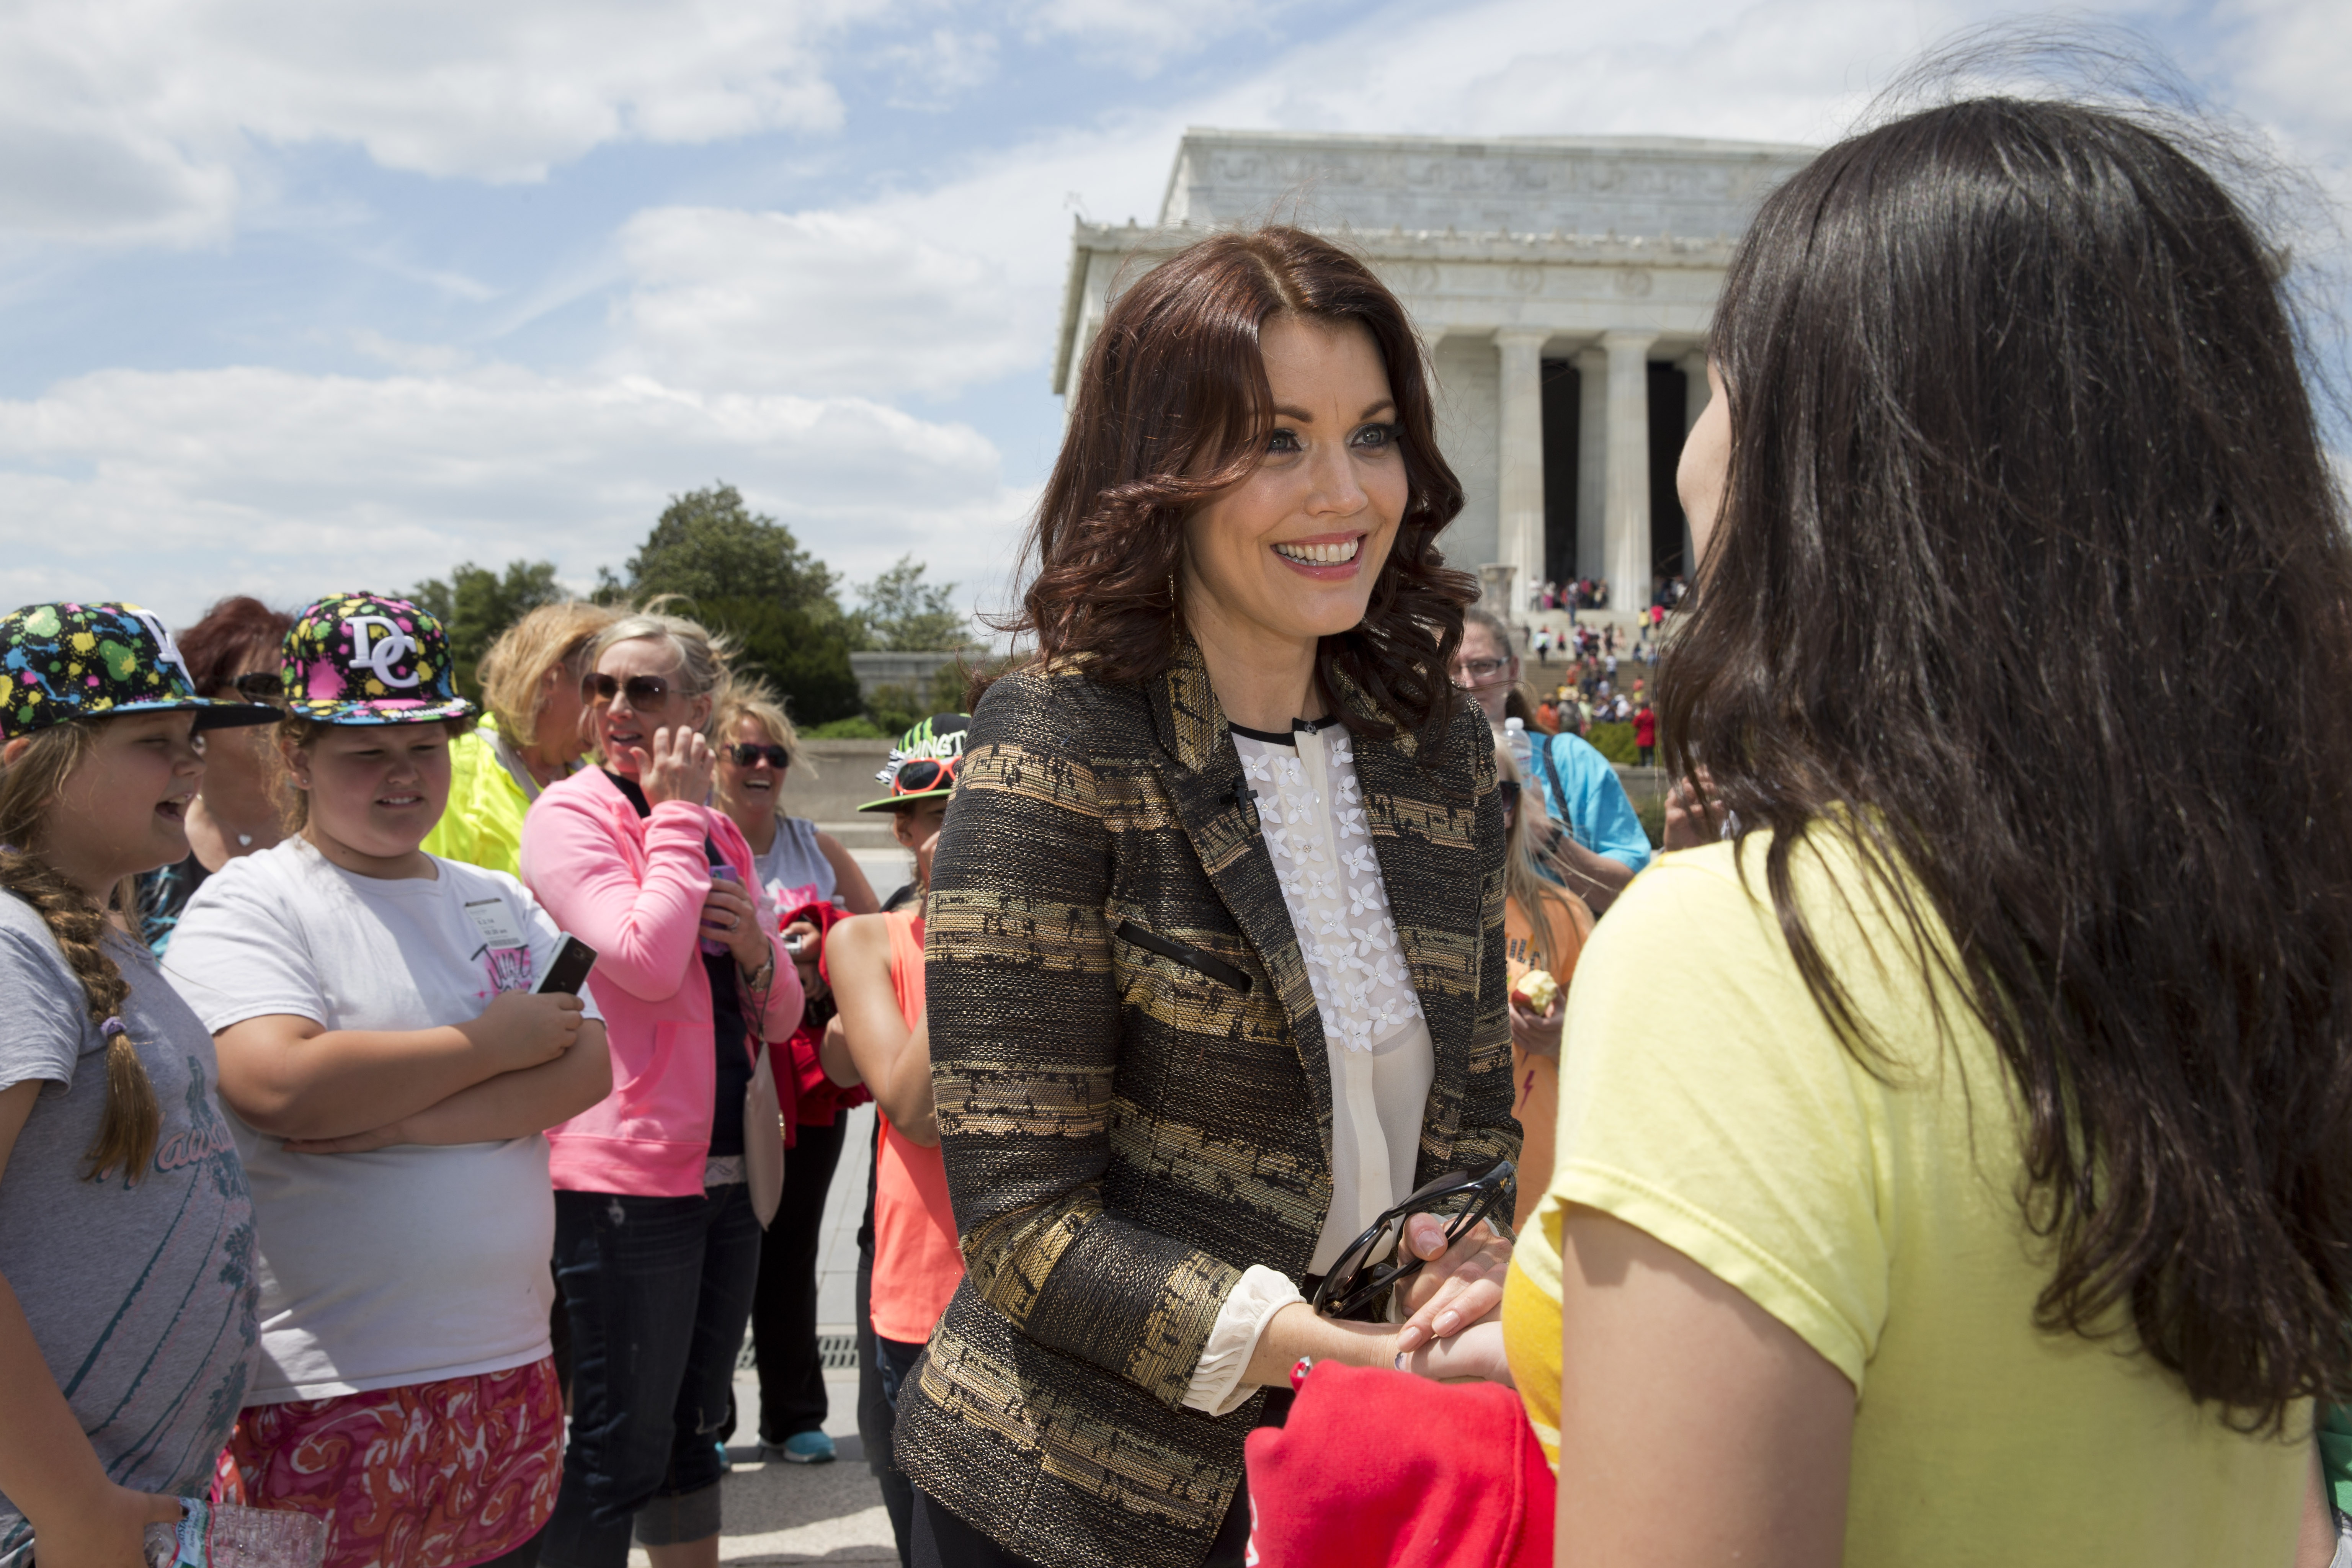 """Bellamy Young, who plays first lady Mellie Grant in the TV show """"Scandal,"""" greets a tourist on the National Mall."""